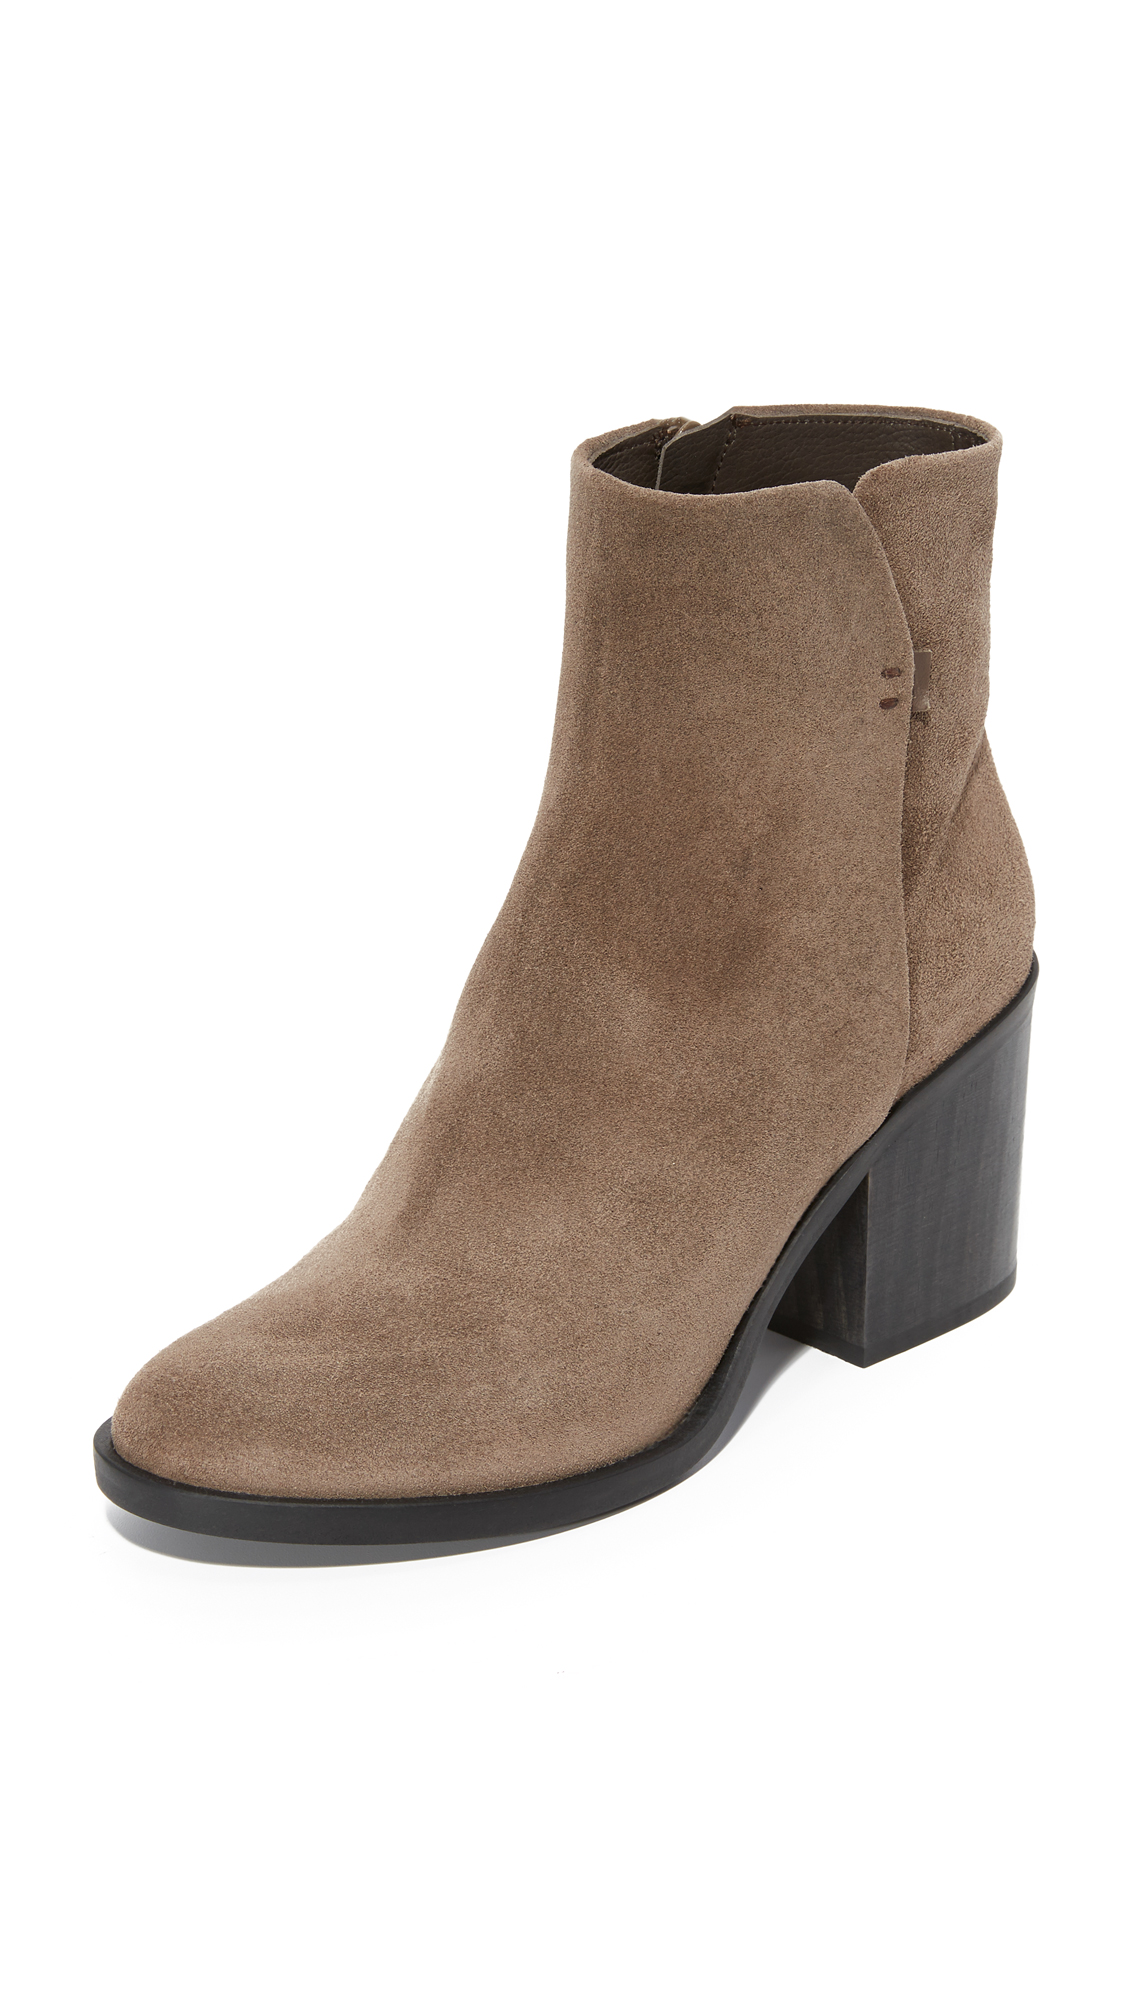 Coclico Shoes Viper Booties - Country Flint